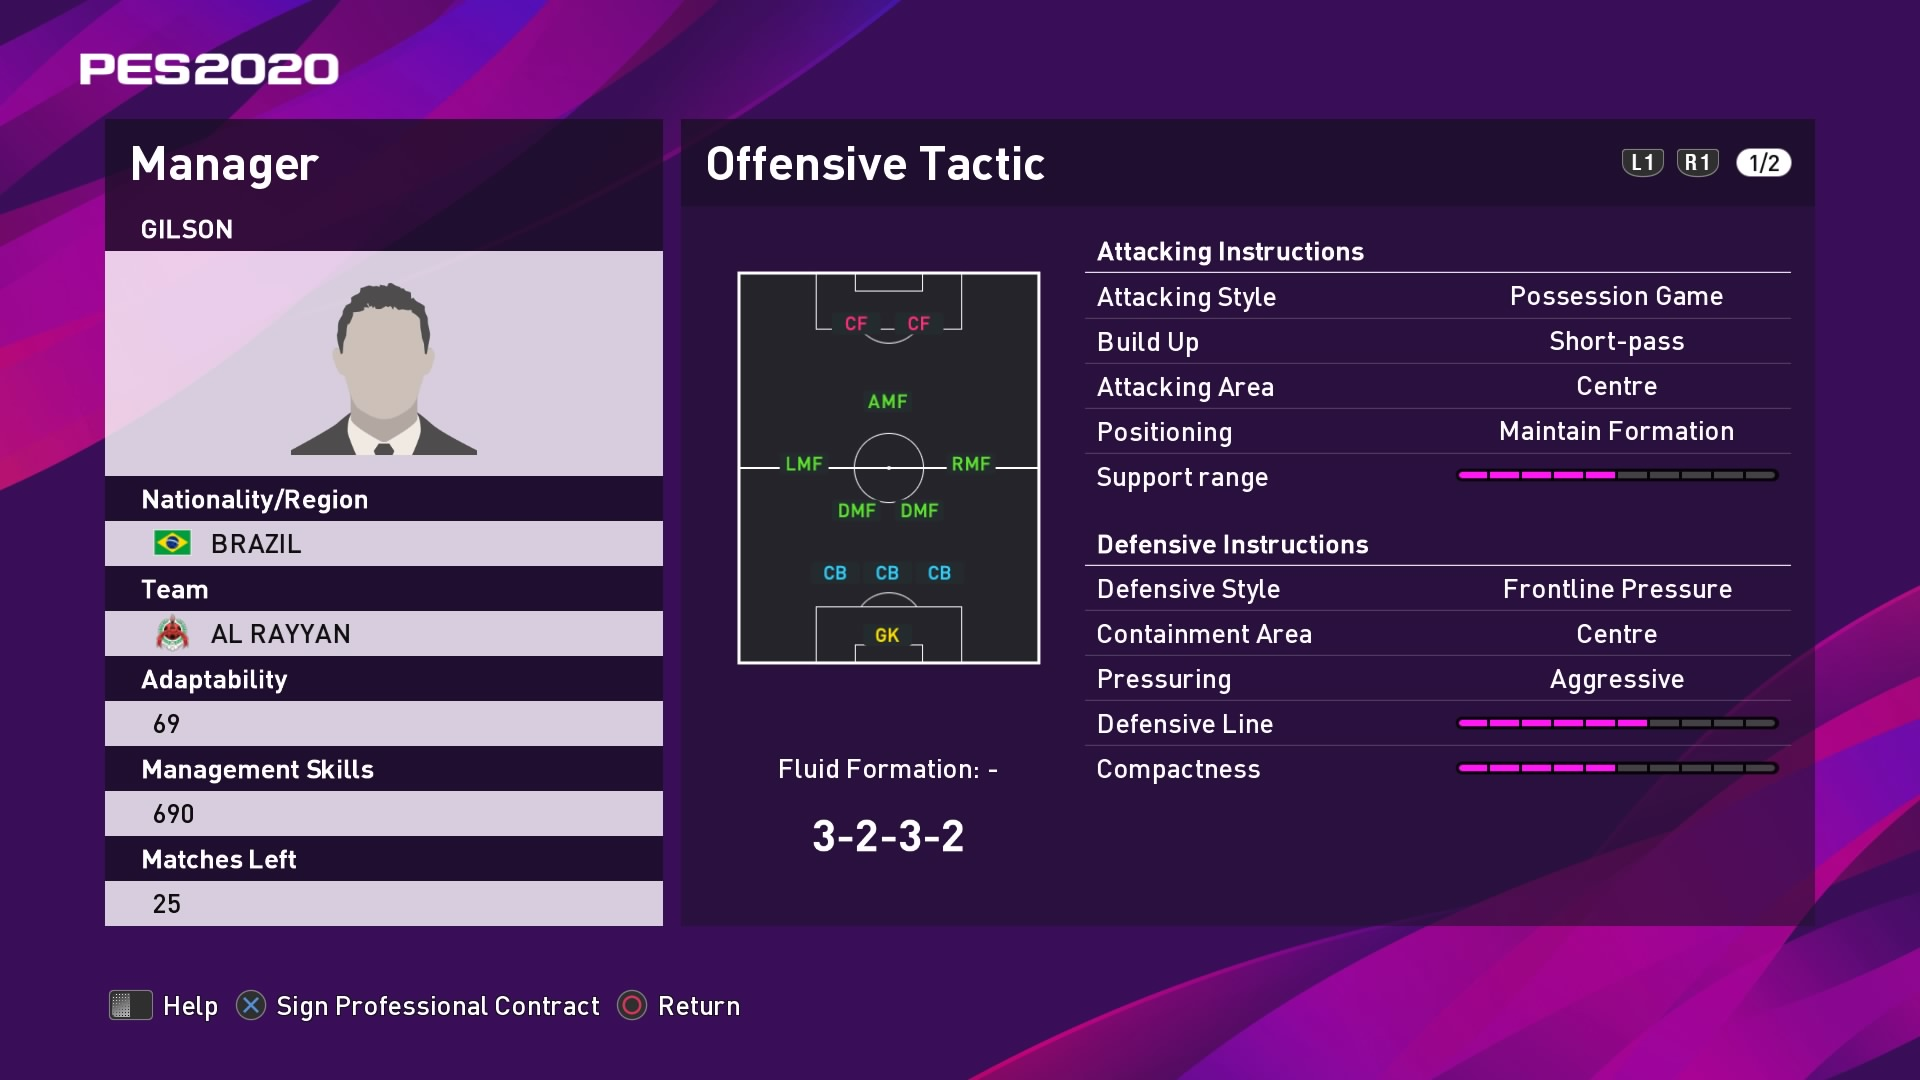 Gilson Offensive Tactic in PES 2020 myClub